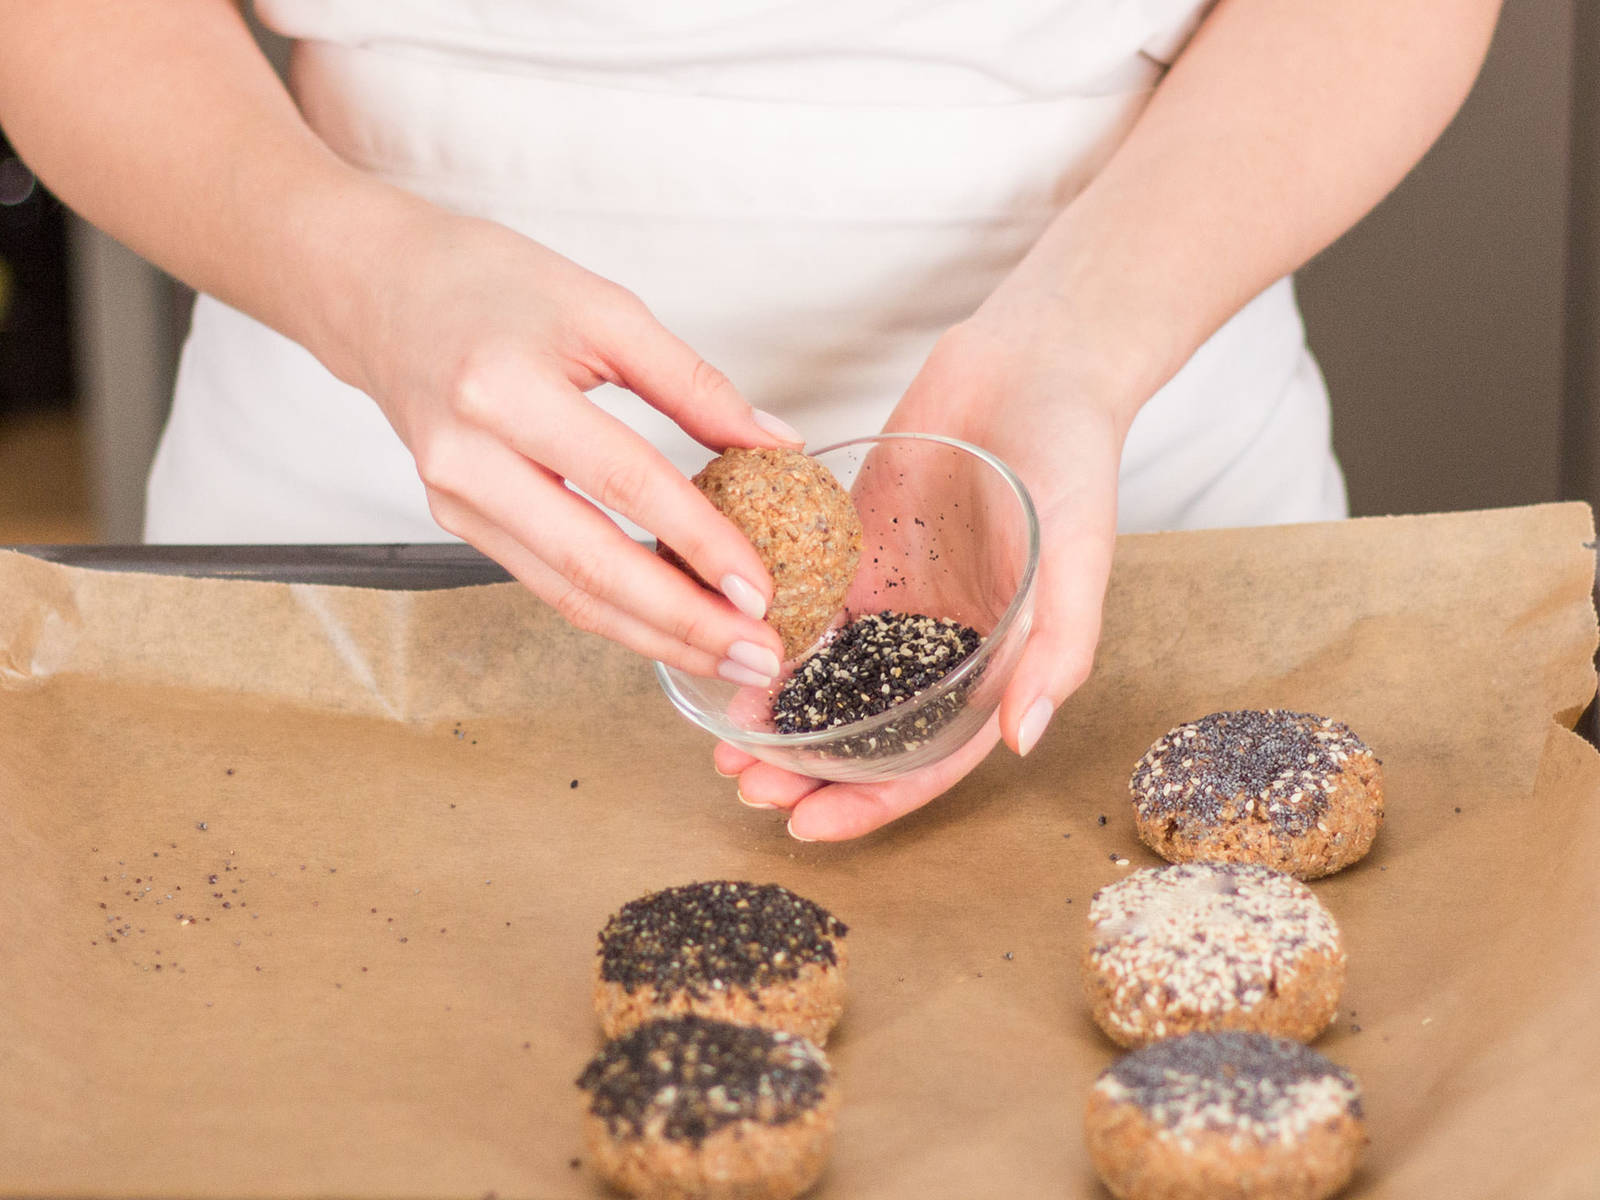 Form dough into balls and transfer to a parchment-lined baking sheet. Roll balls in black sesame, white sesame, or poppy seeds. Bake at 180°C/350°F for approx. 20 – 30 min. Enjoy!